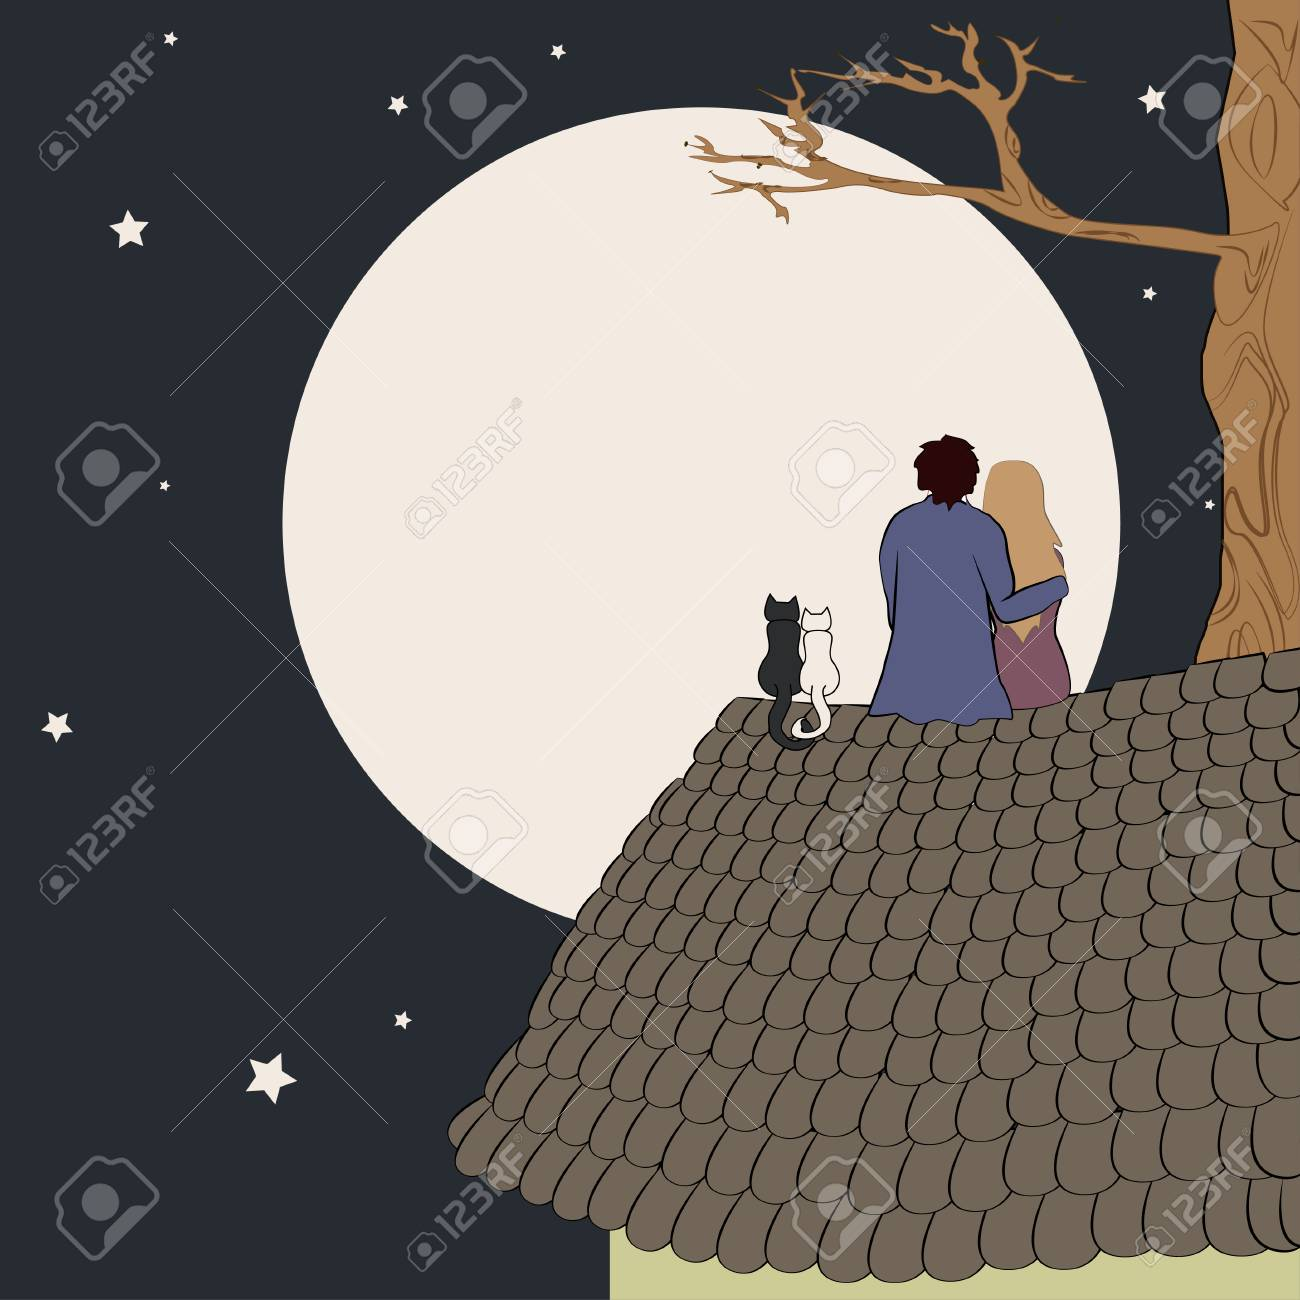 Hand Drawn Vector Illustration Of Loving Couple Sitting On Roof Royalty Free Cliparts Vectors And Stock Illustration Image 111965251